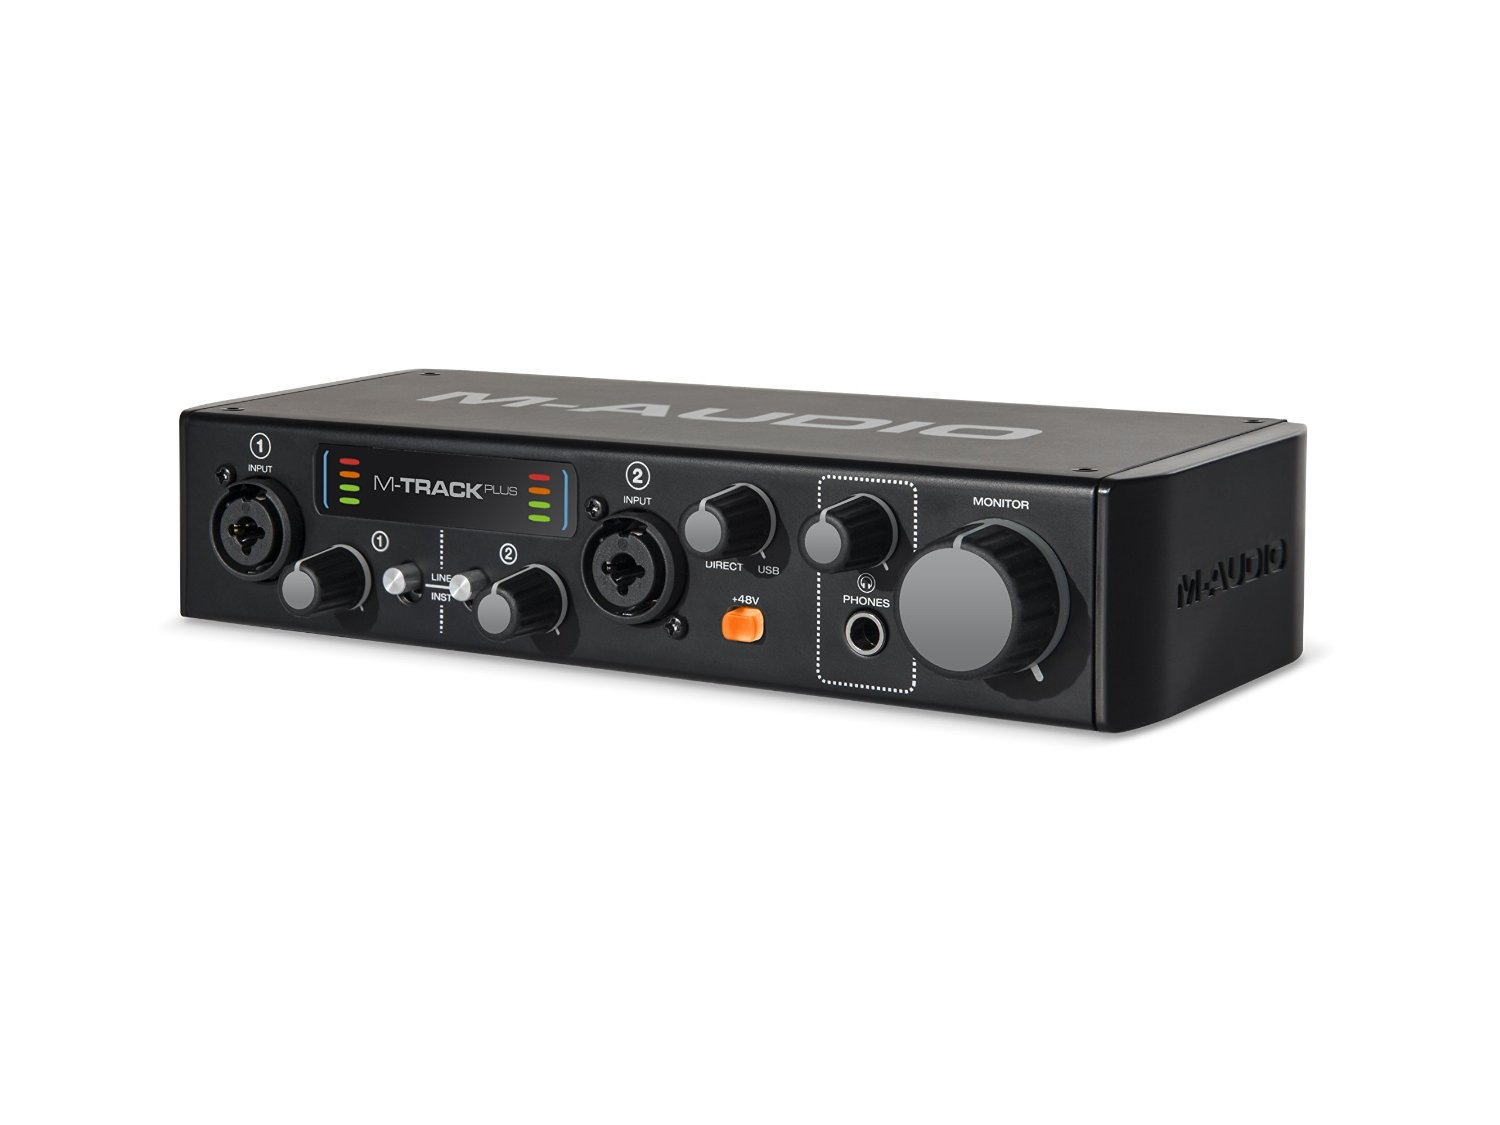 M-Audio M-track MKII review